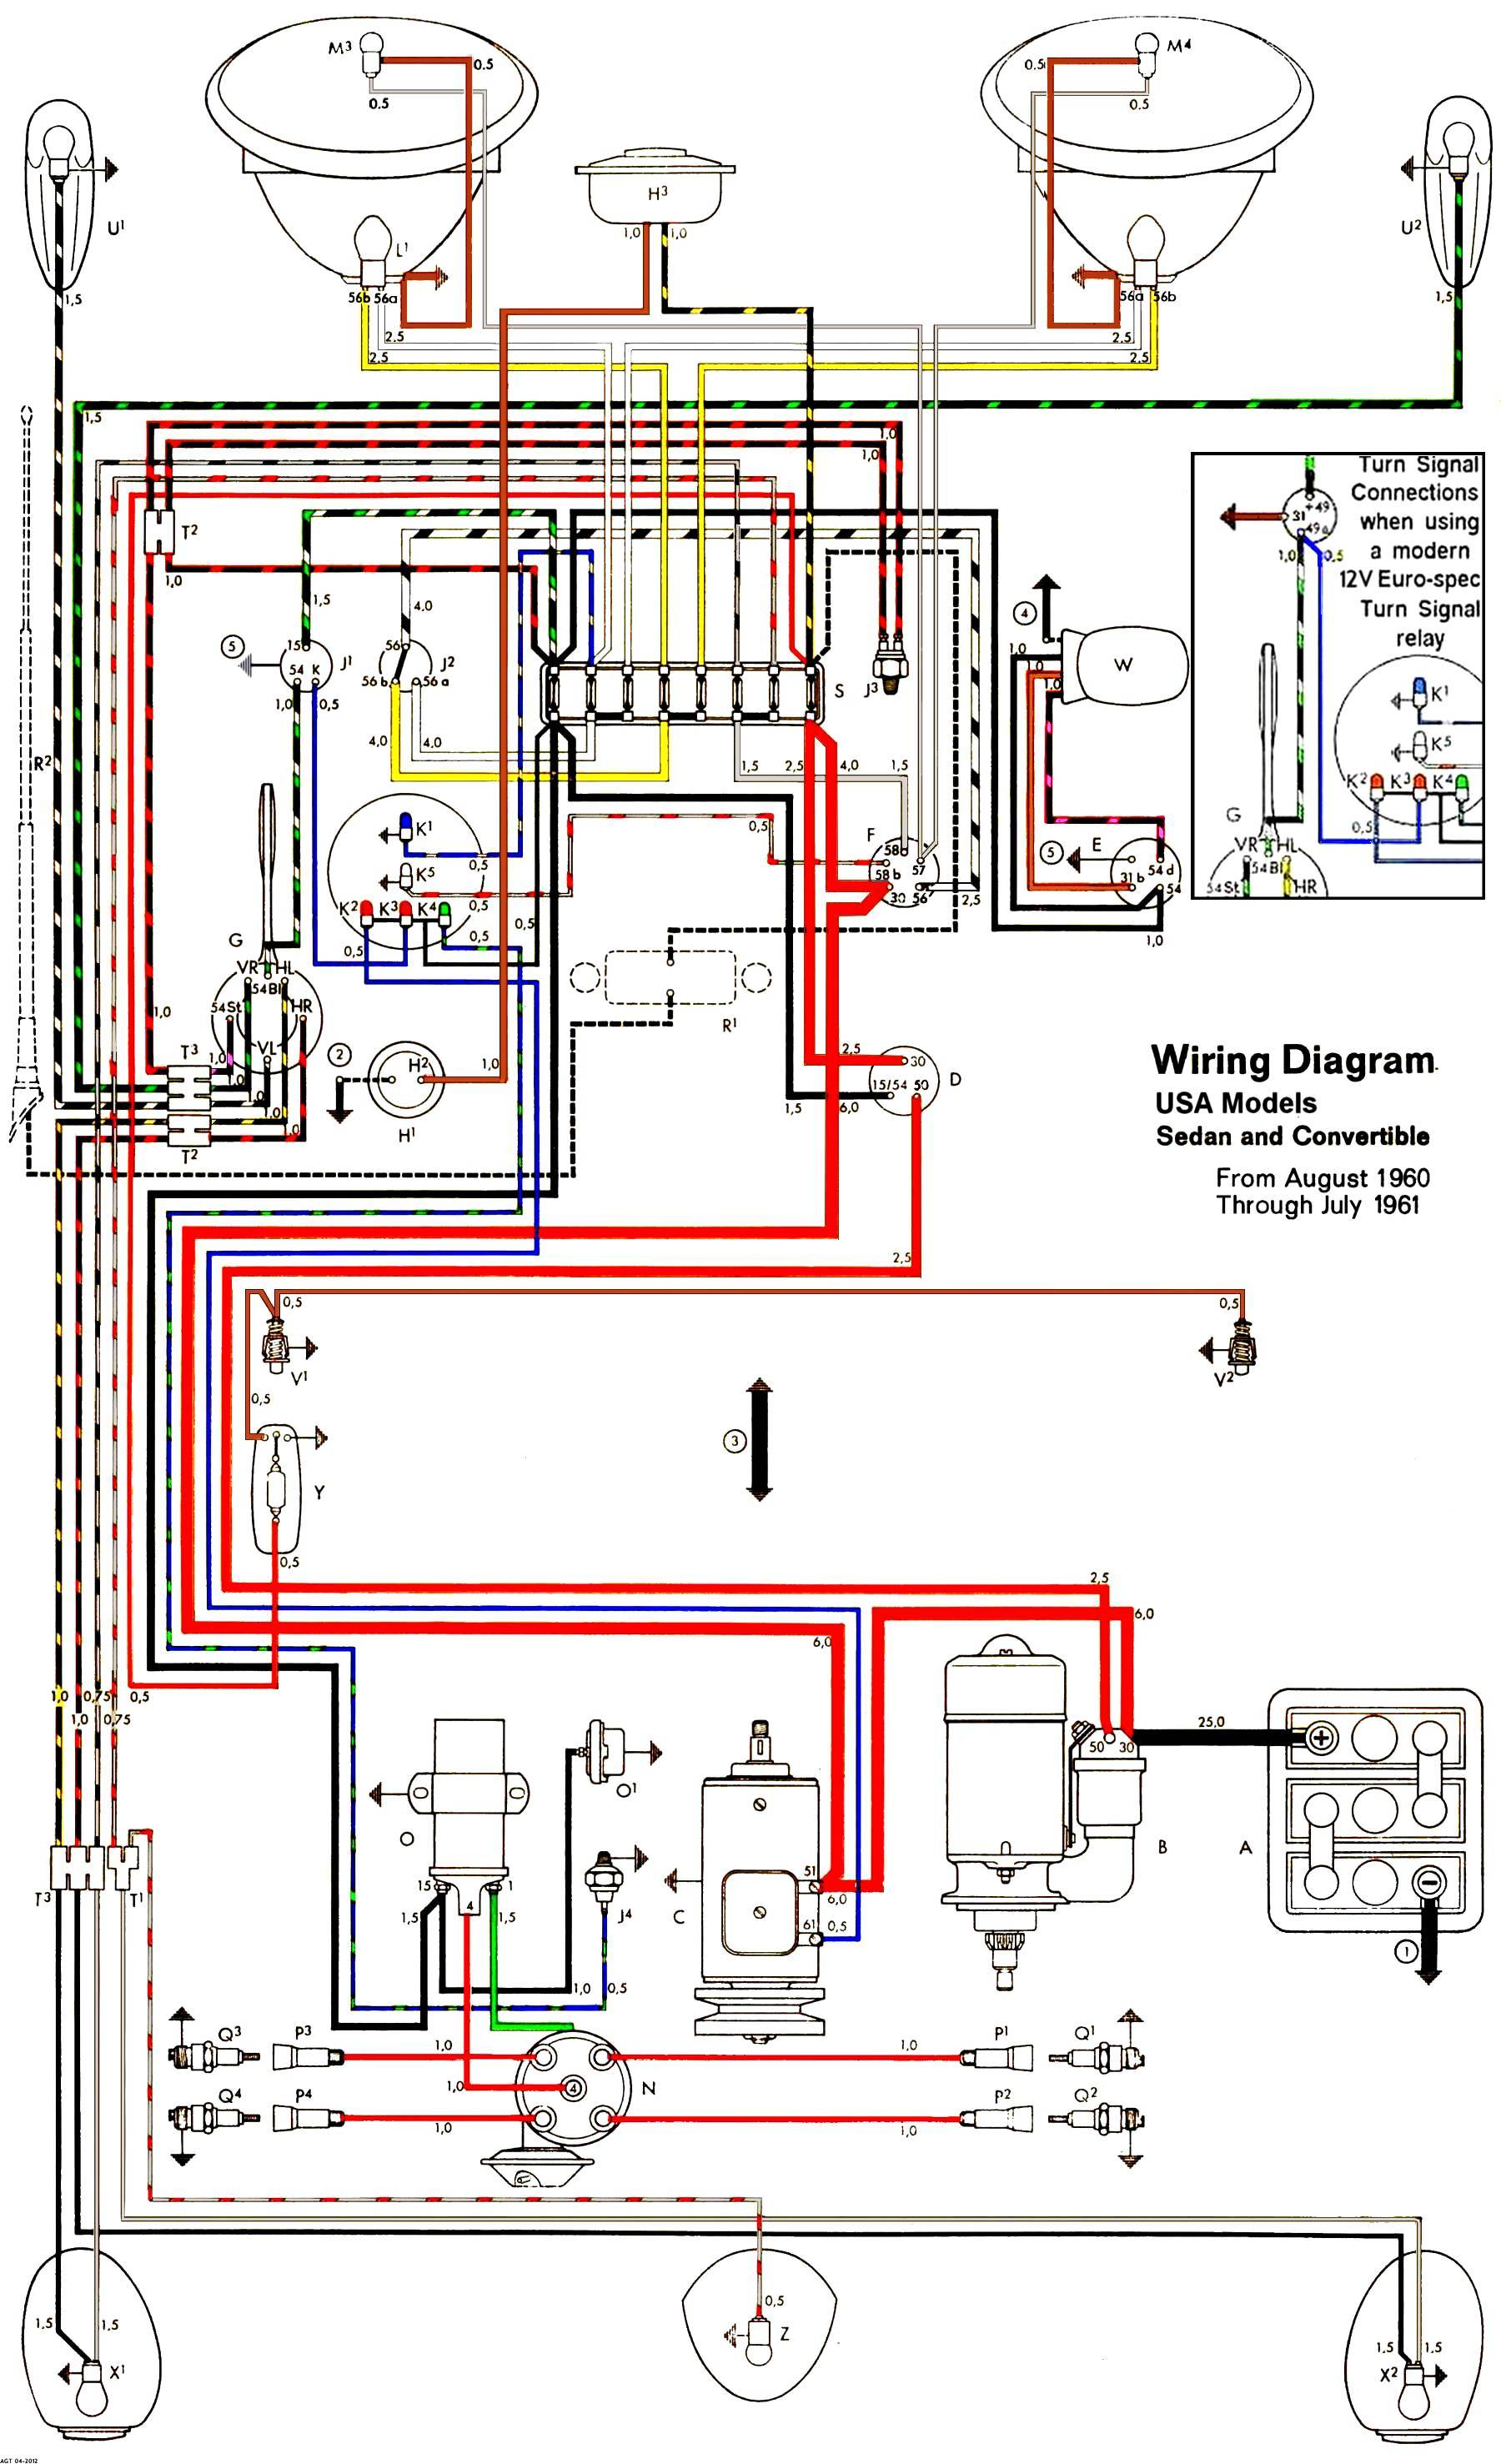 1961USA T1 thesamba com type 1 wiring diagrams youtube vw alt wiring diagram at cos-gaming.co